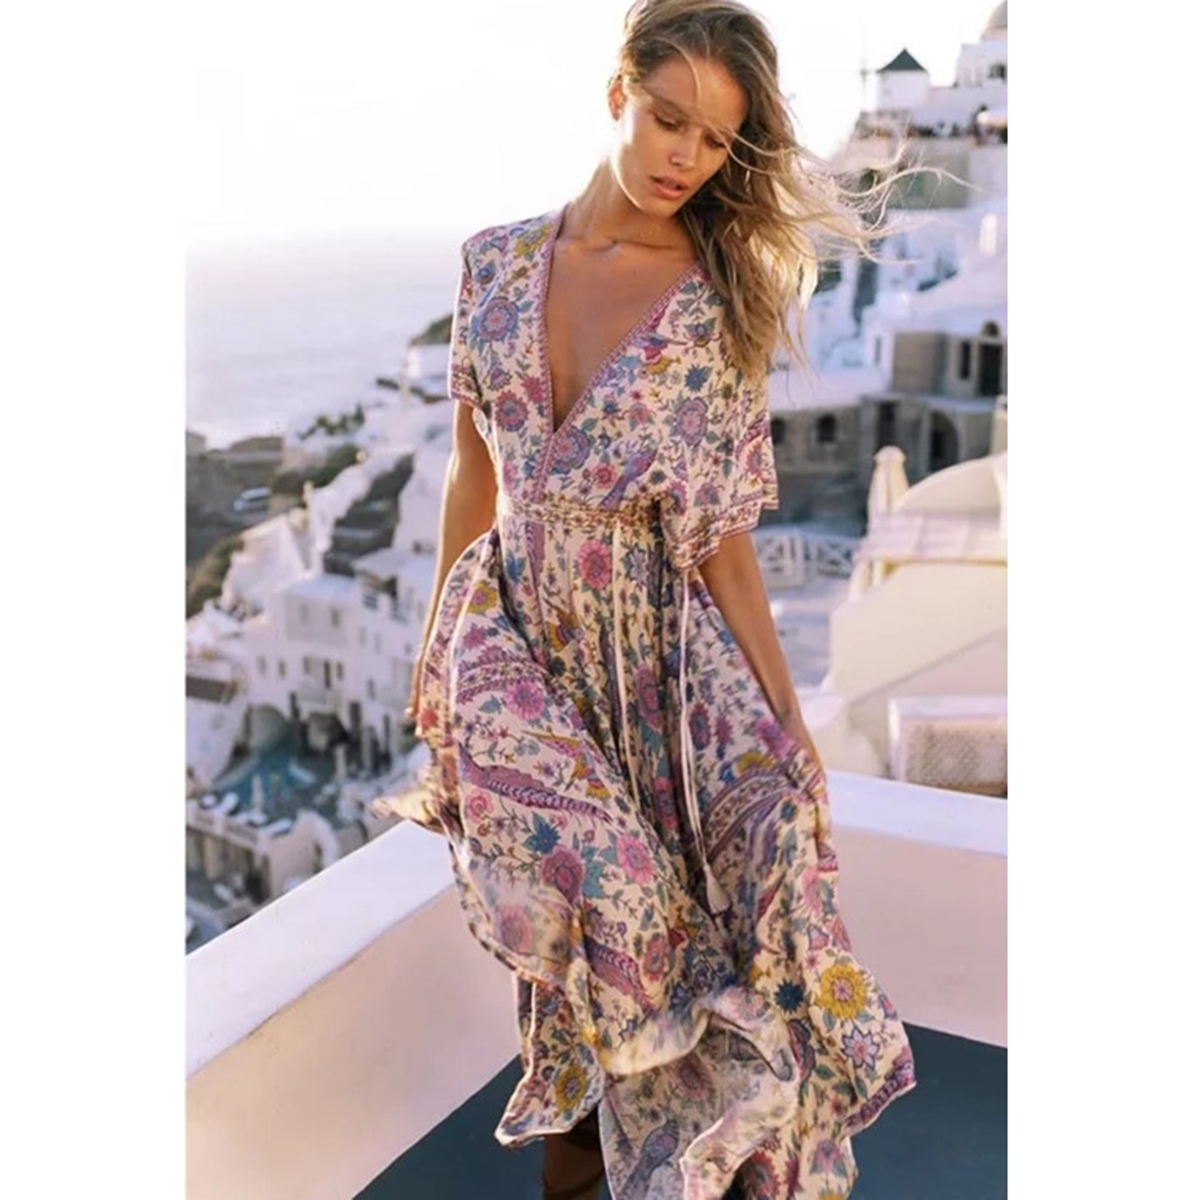 Lovebird Retro <font><b>Boho</b></font> Maxi <font><b>Dress</b></font> Women 2019 Summer <font><b>Short</b></font> Sleeve Vneck Chic <font><b>Sexy</b></font> <font><b>Dress</b></font> Big Hem <font><b>Floral</b></font> <font><b>Print</b></font> <font><b>Beach</b></font> Hippie Long <font><b>Dress</b></font> image